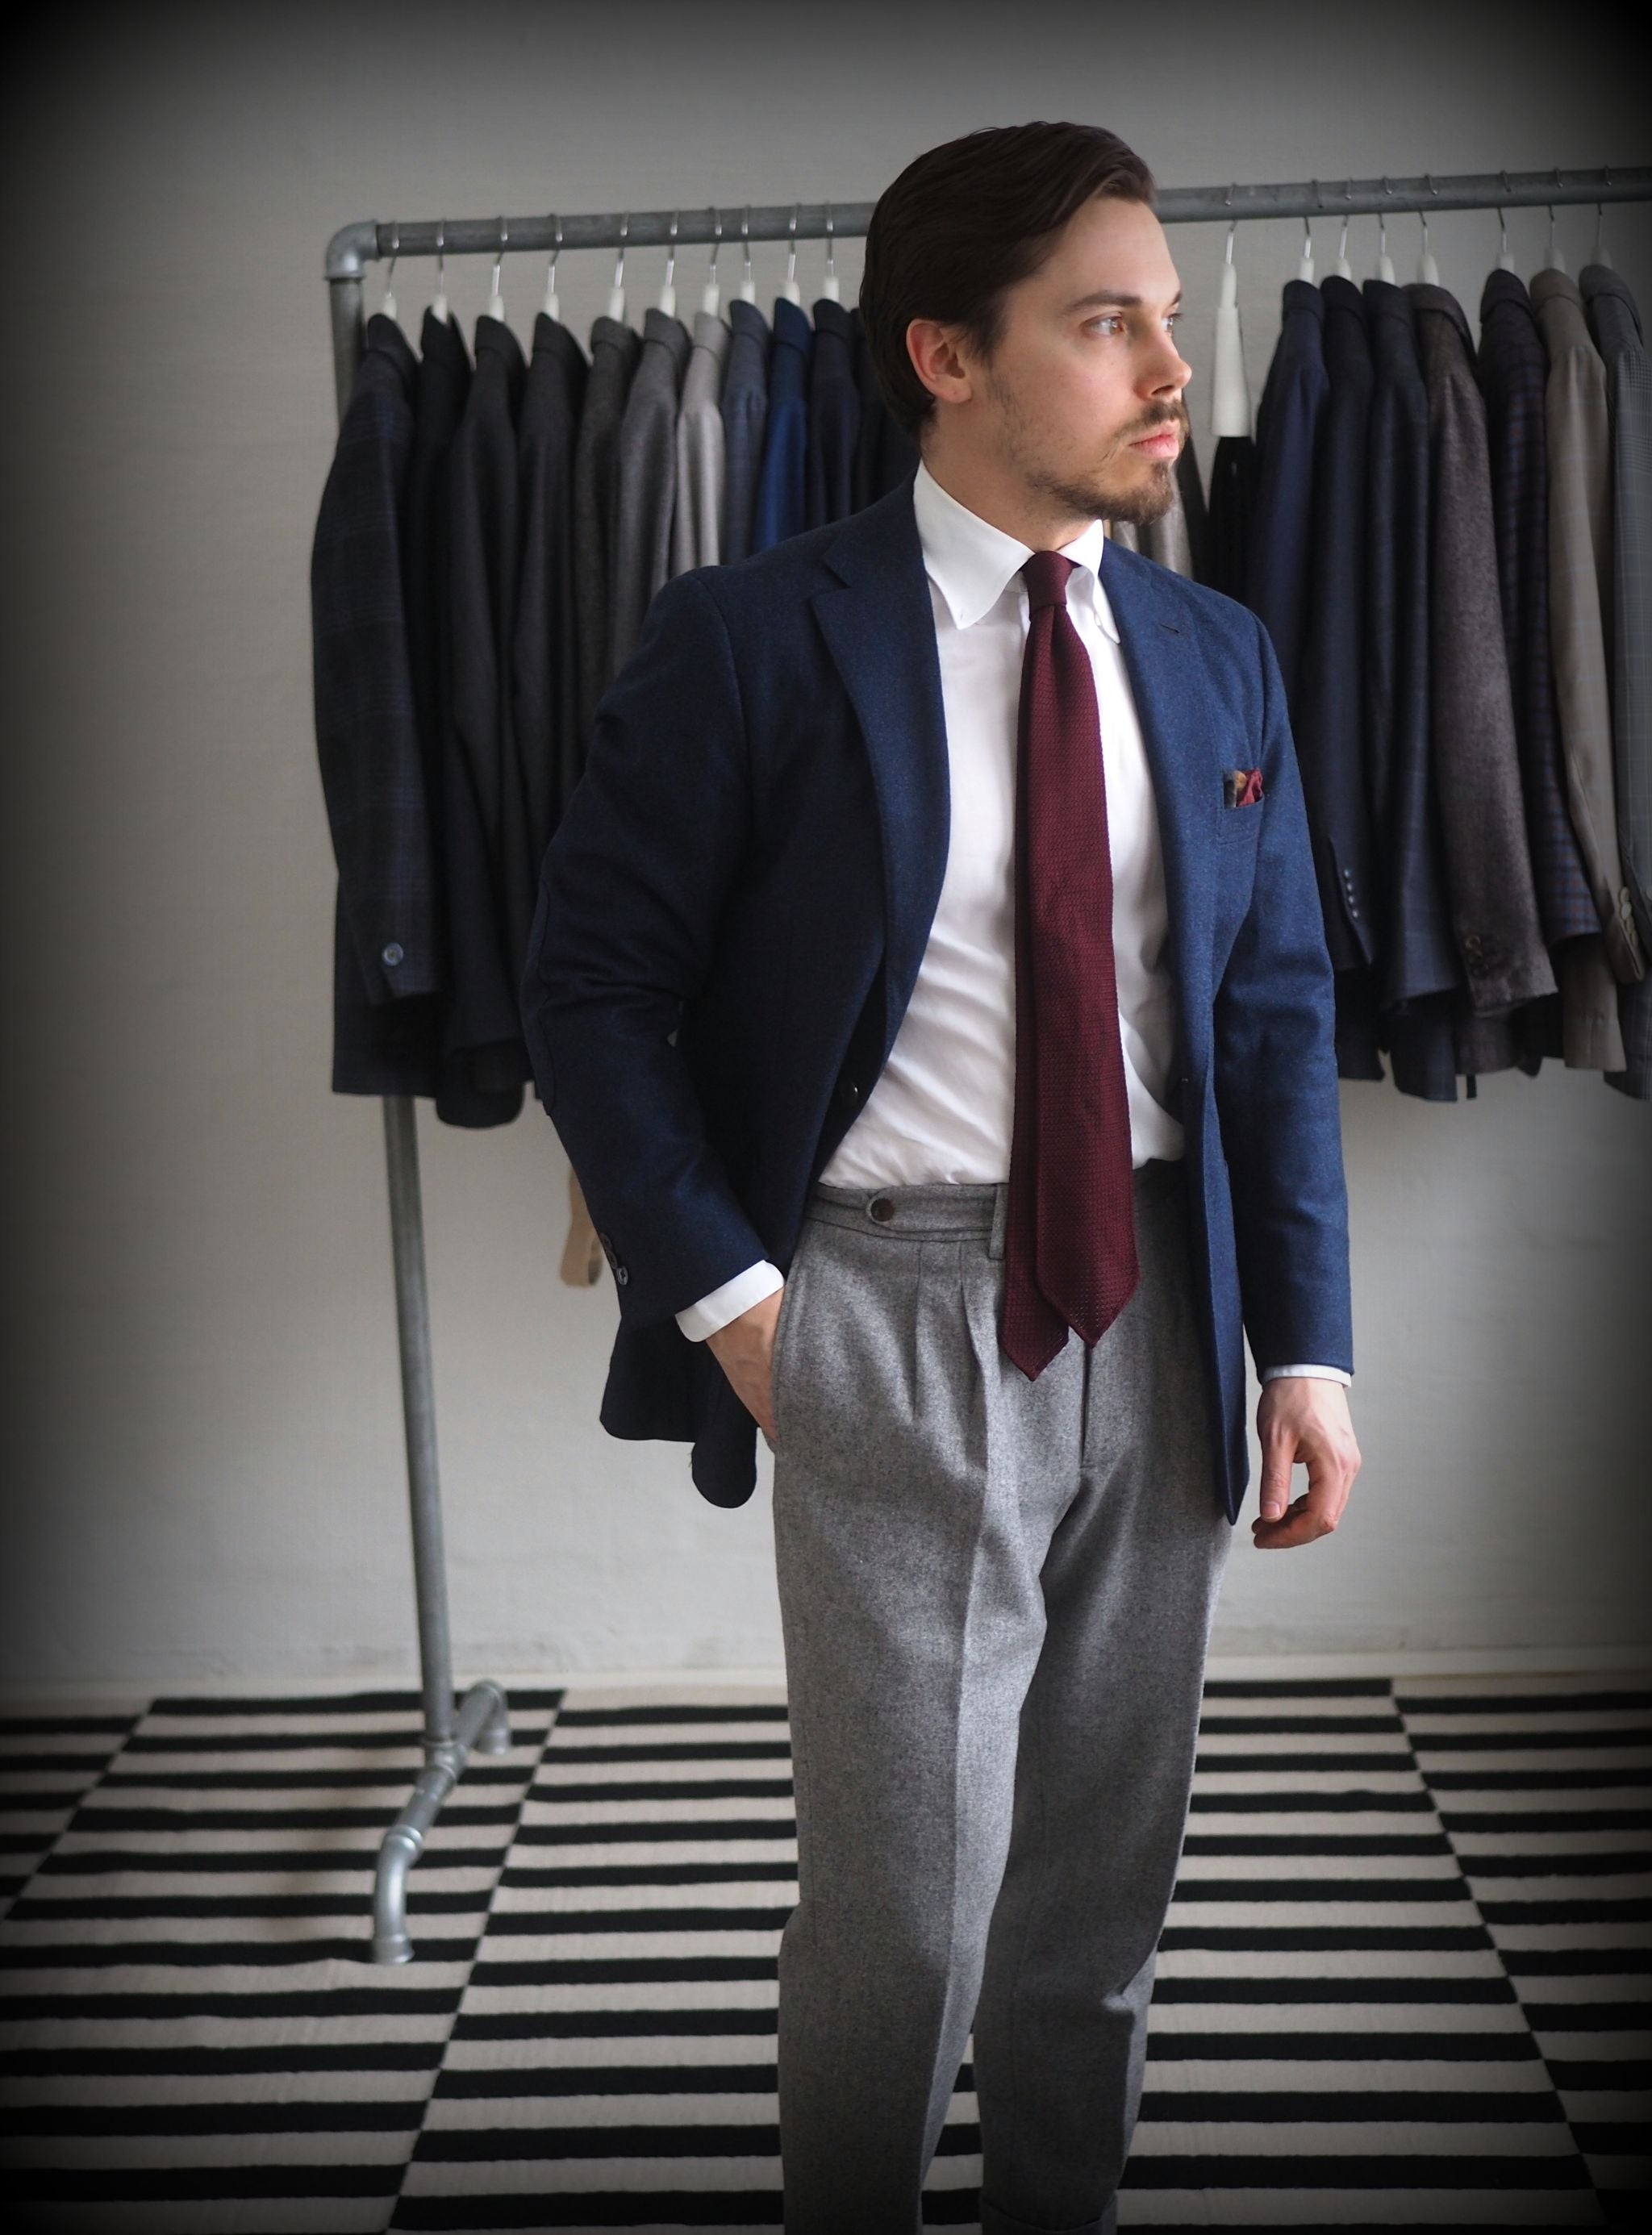 Classic combinations for men - Navy blazer with gray trousers and burgundy tie